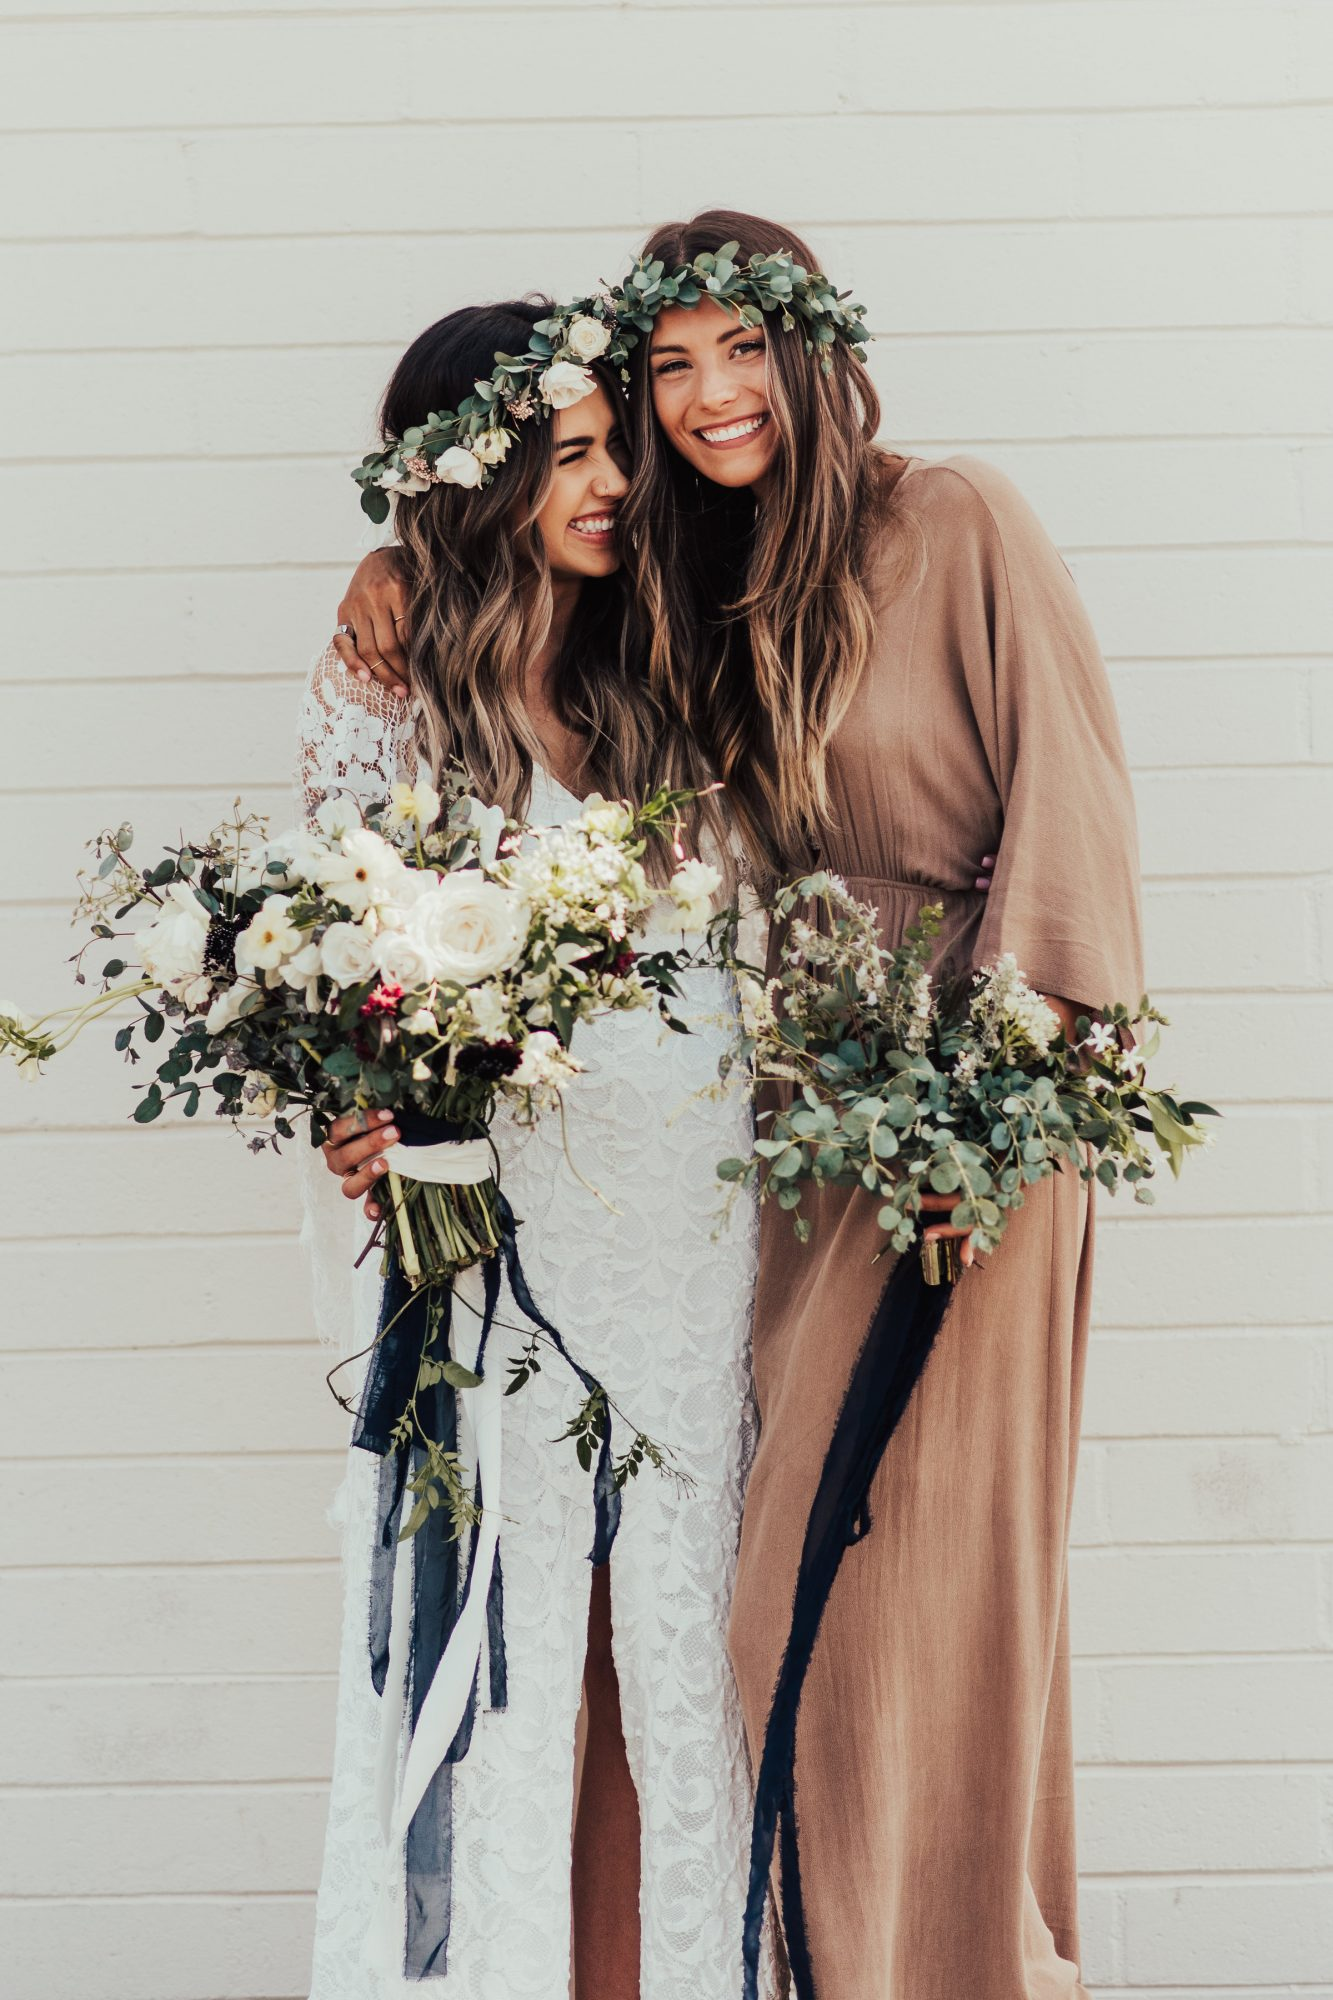 bride and maid of honor wearing matching headpieces